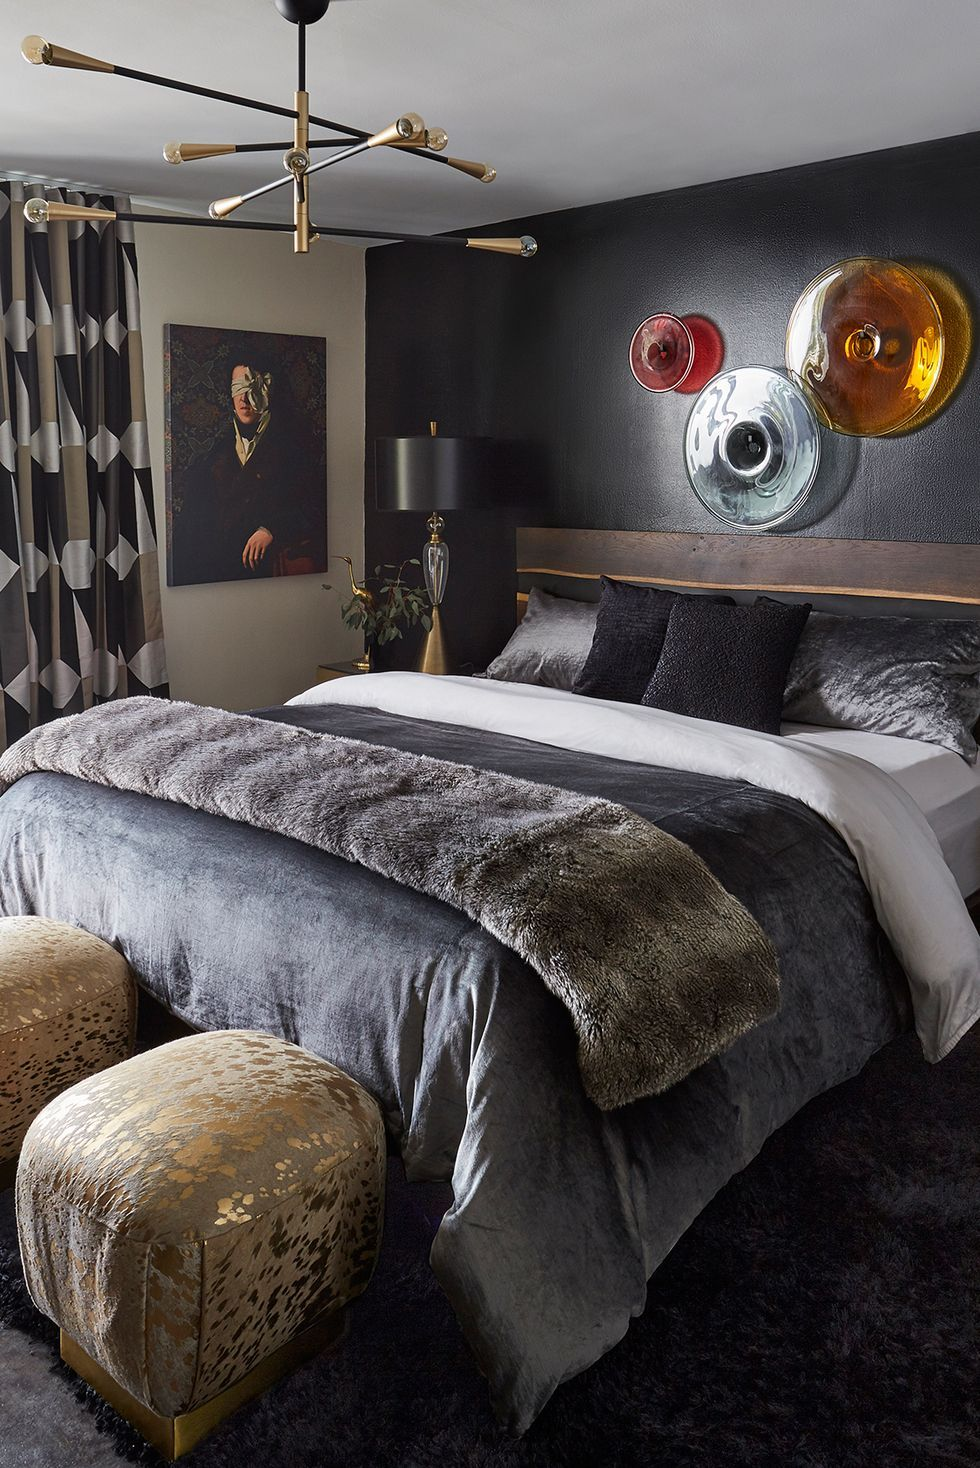 12 Gorgeous Dark Bedrooms - Bedrooms with Dark Color Palettes